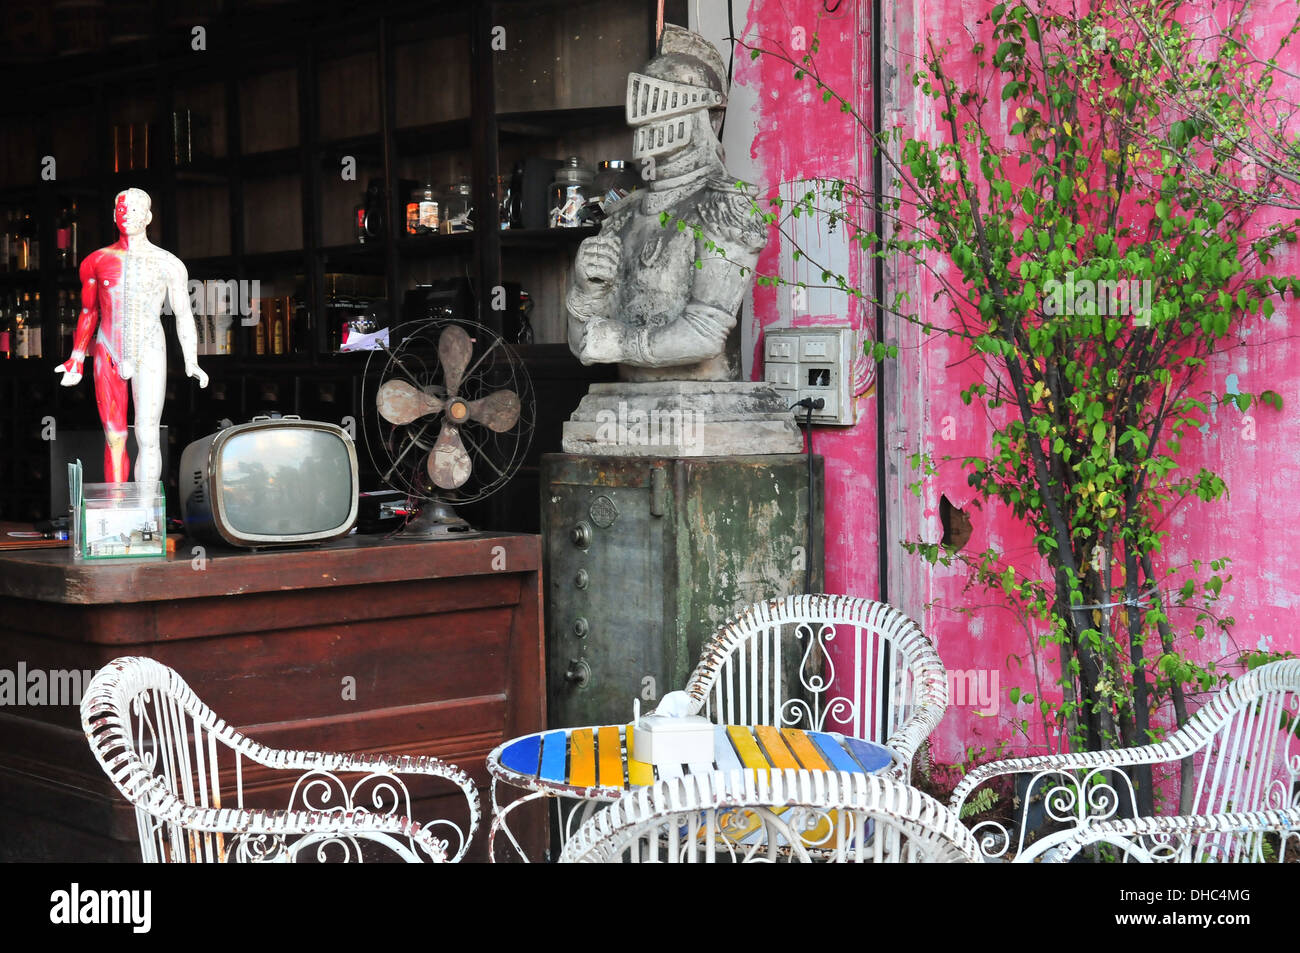 Bangkok Chatuchak Weekend Market, Thailand - cafe - Stock Image